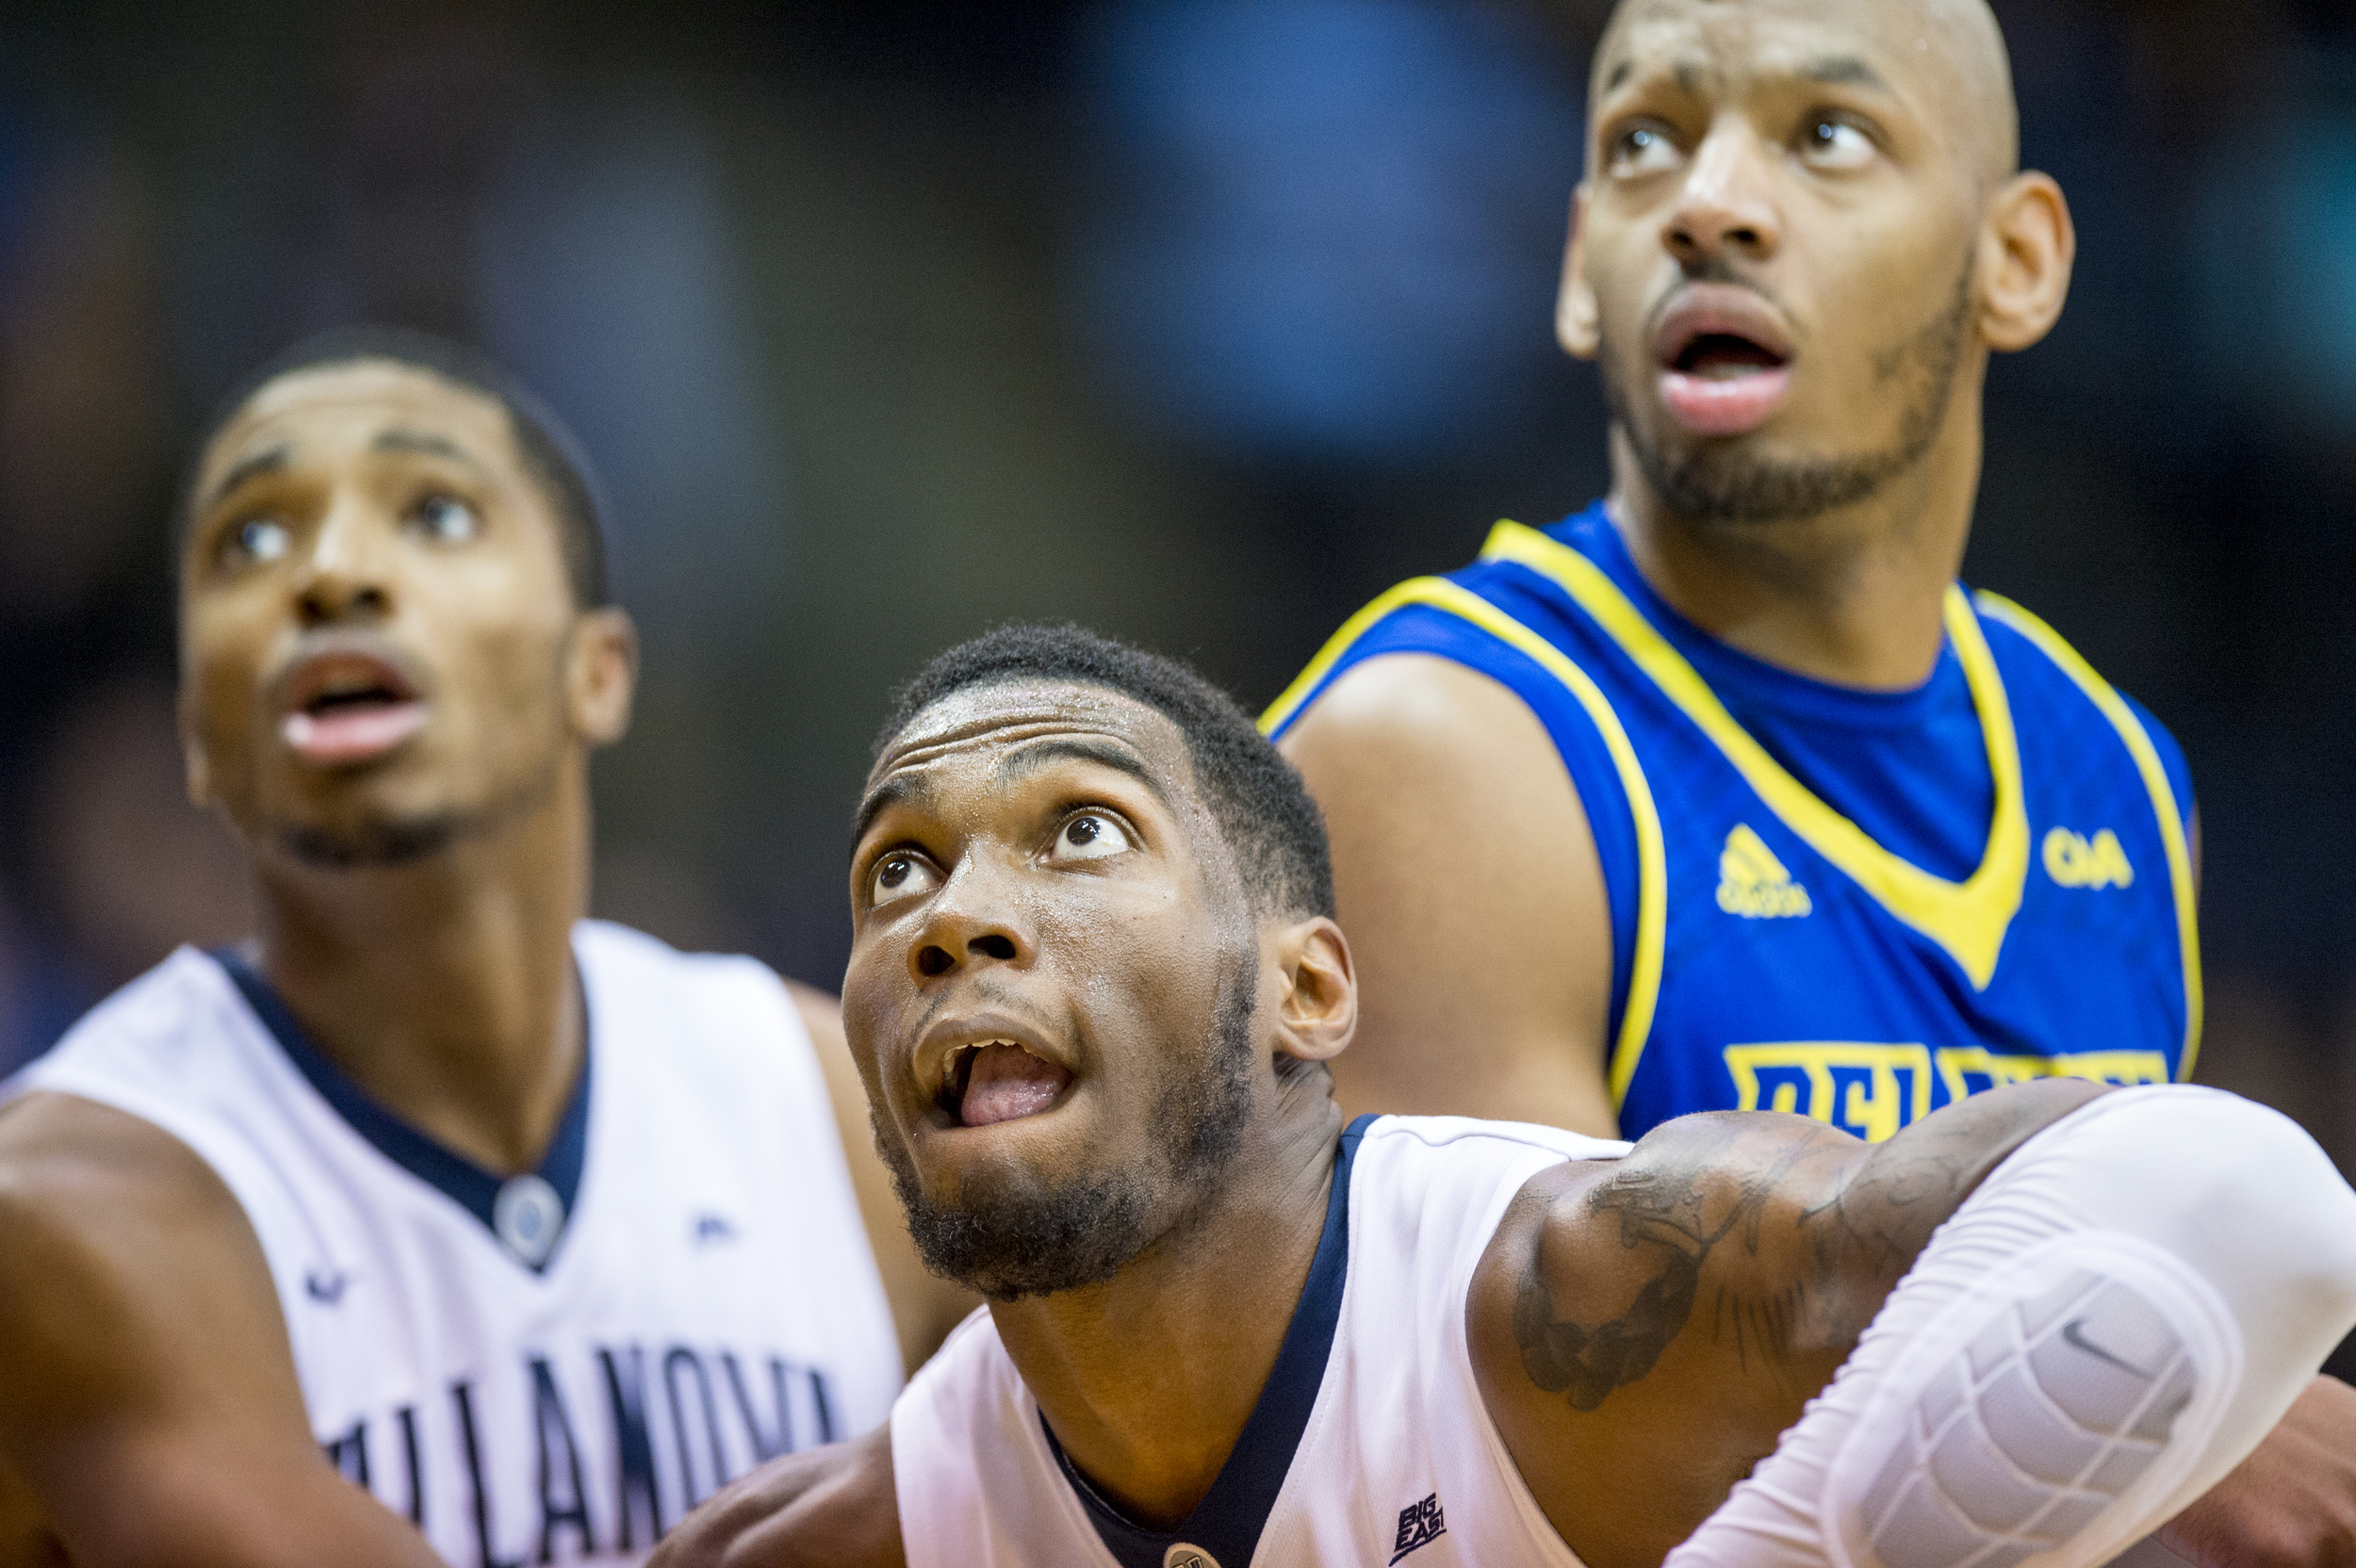 22 December 2015: Villanova Wildcats forward Darryl Reynolds (45) and Villanova Wildcats guard Mikal Bridges (25) and Delaware Fightin Blue Hens forward Barnett Harris (2) looks for the rebound to fall during the NCAA basketball game between the Delaware Blue Hens and the Villanova Wildcats played at the Pavillion in Villanova, PA. (Photo by Gavin Baker/Icon Sportswire)